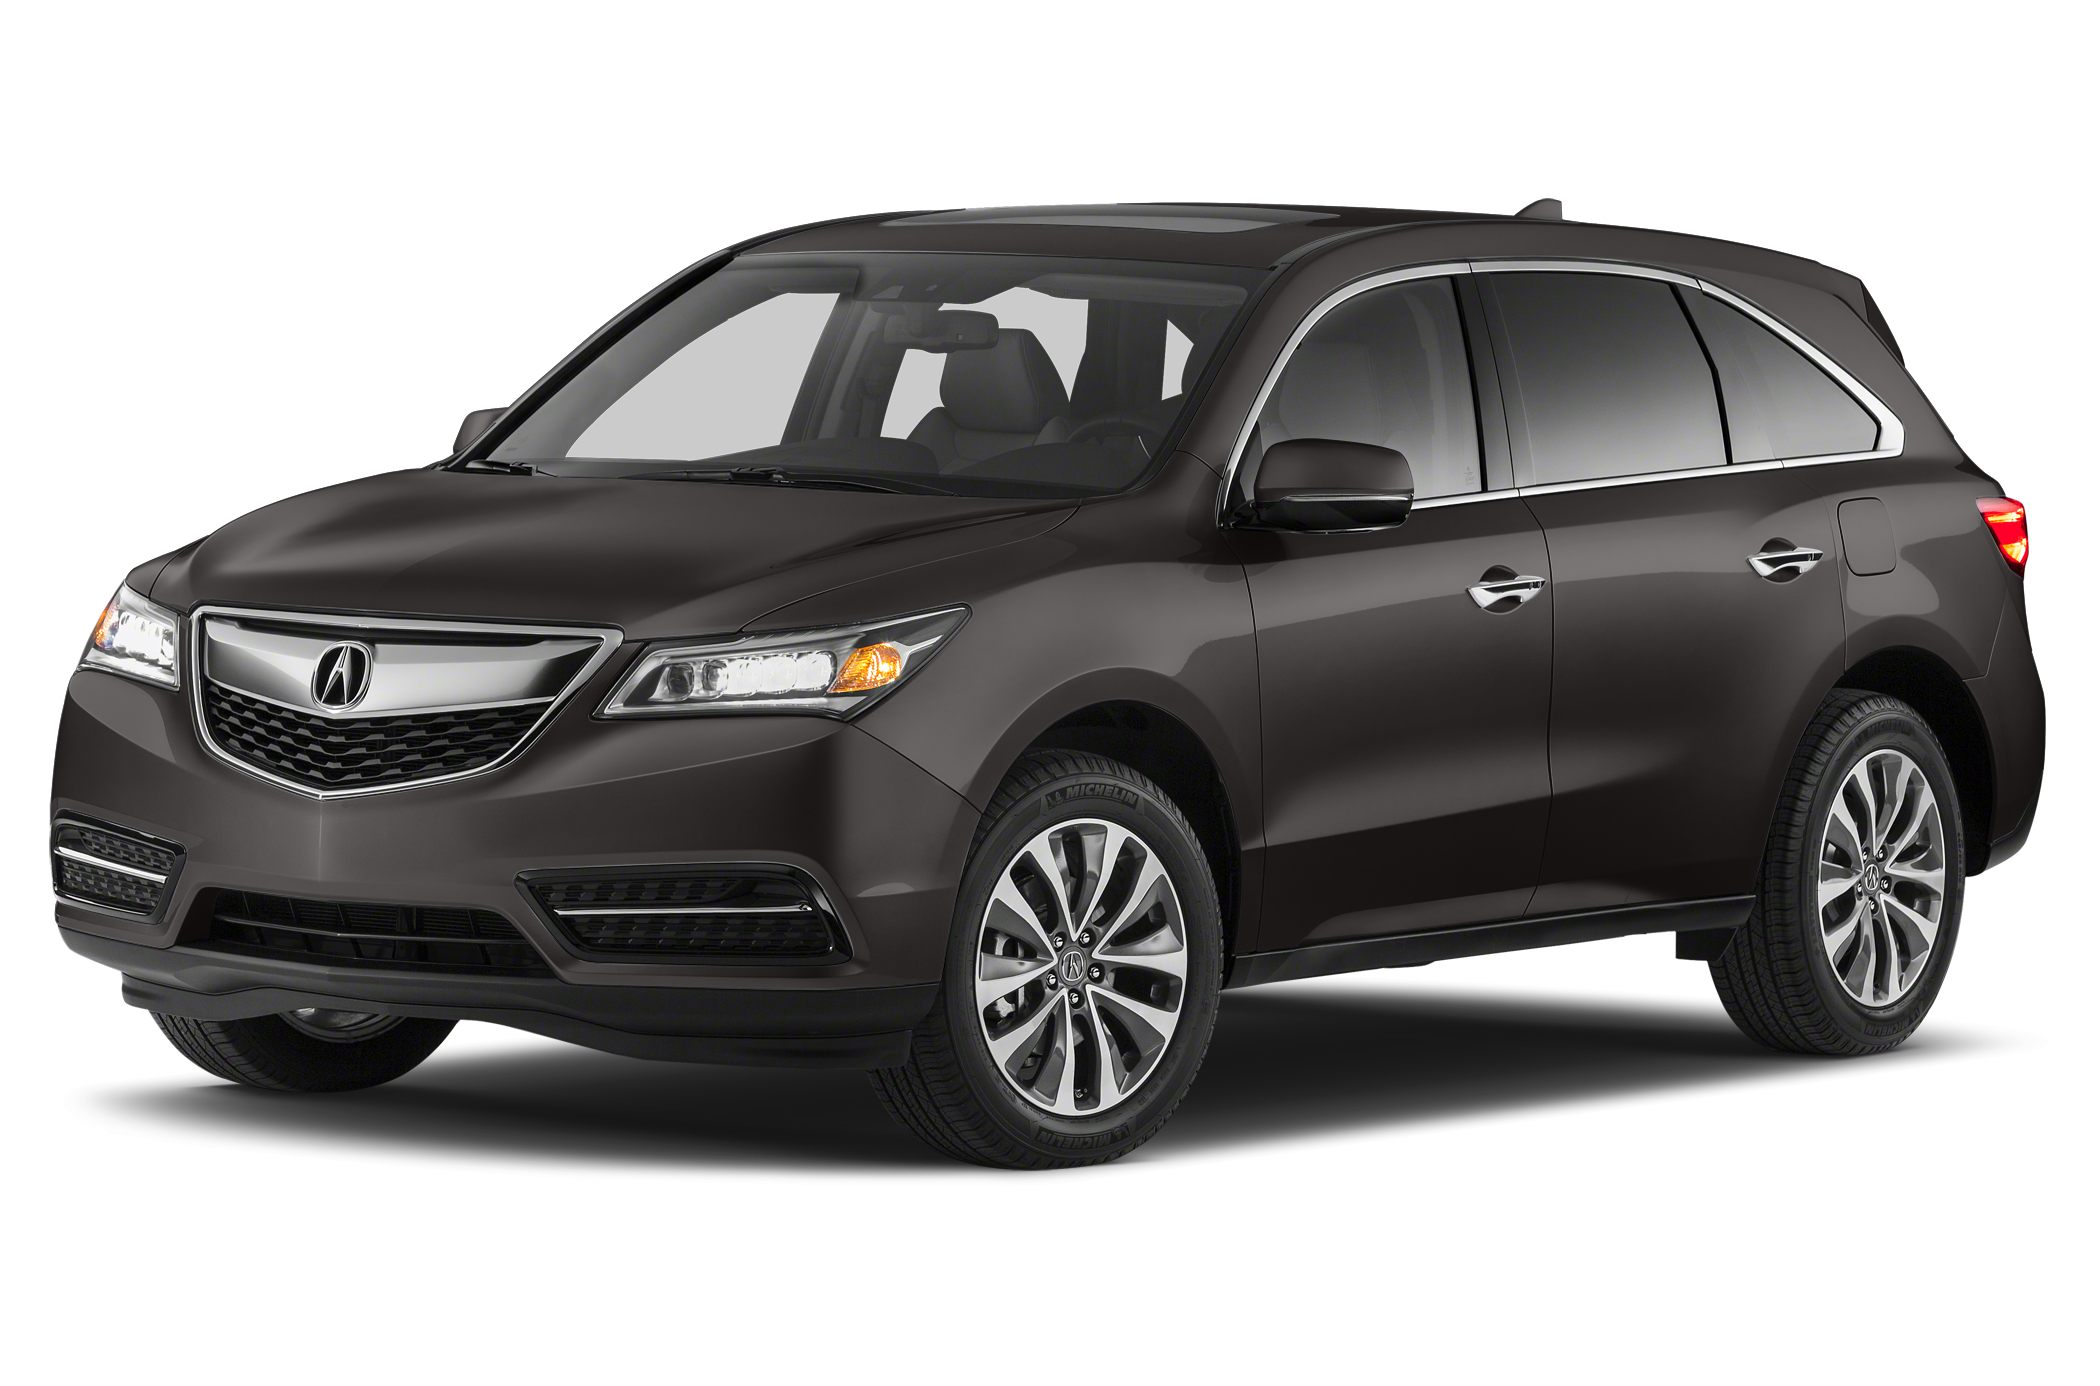 acura mdx images #4